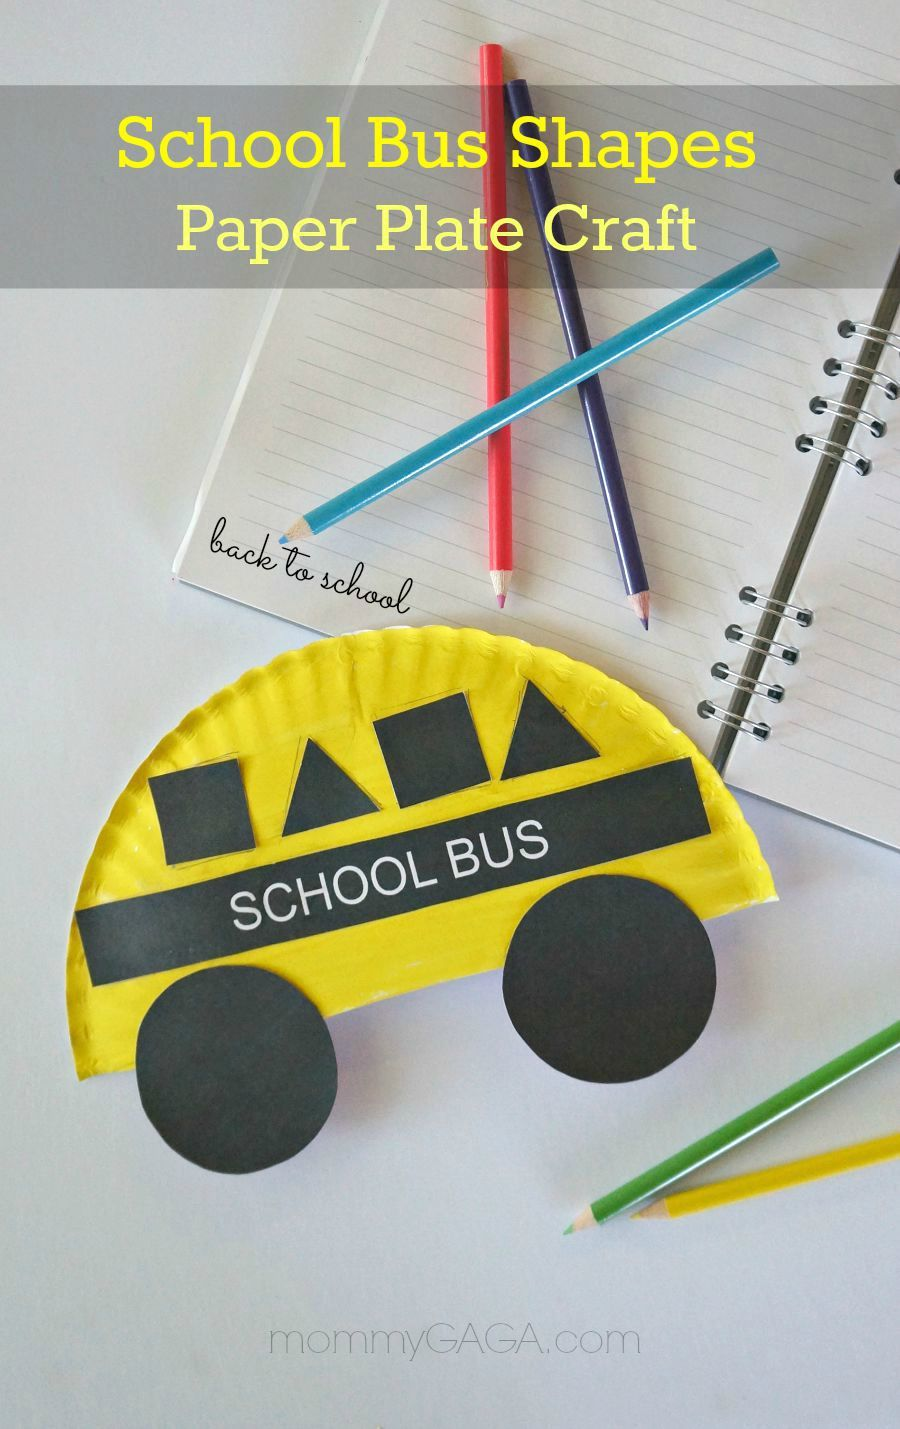 Back to school crafts paper plate school bus shapes craft for Art and craft for school decoration